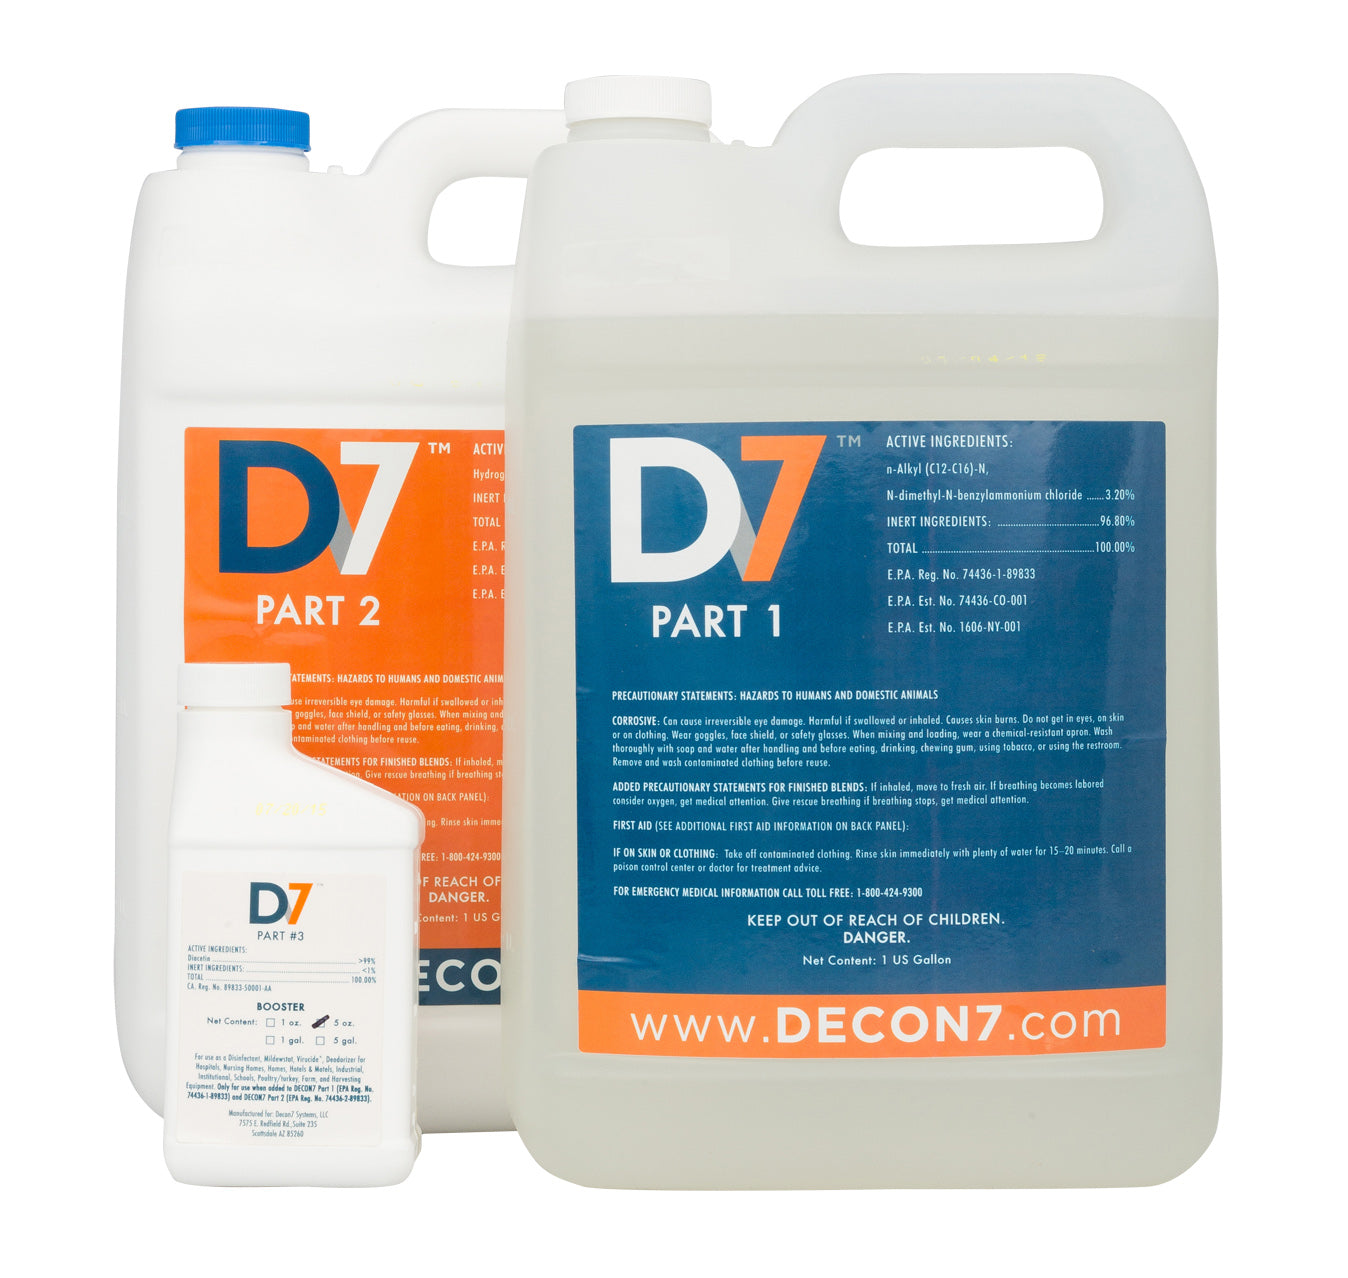 Decon7's D7 is globally recognized as one of the safest and best disinfectants to combat COVID-19 and other pathogens.